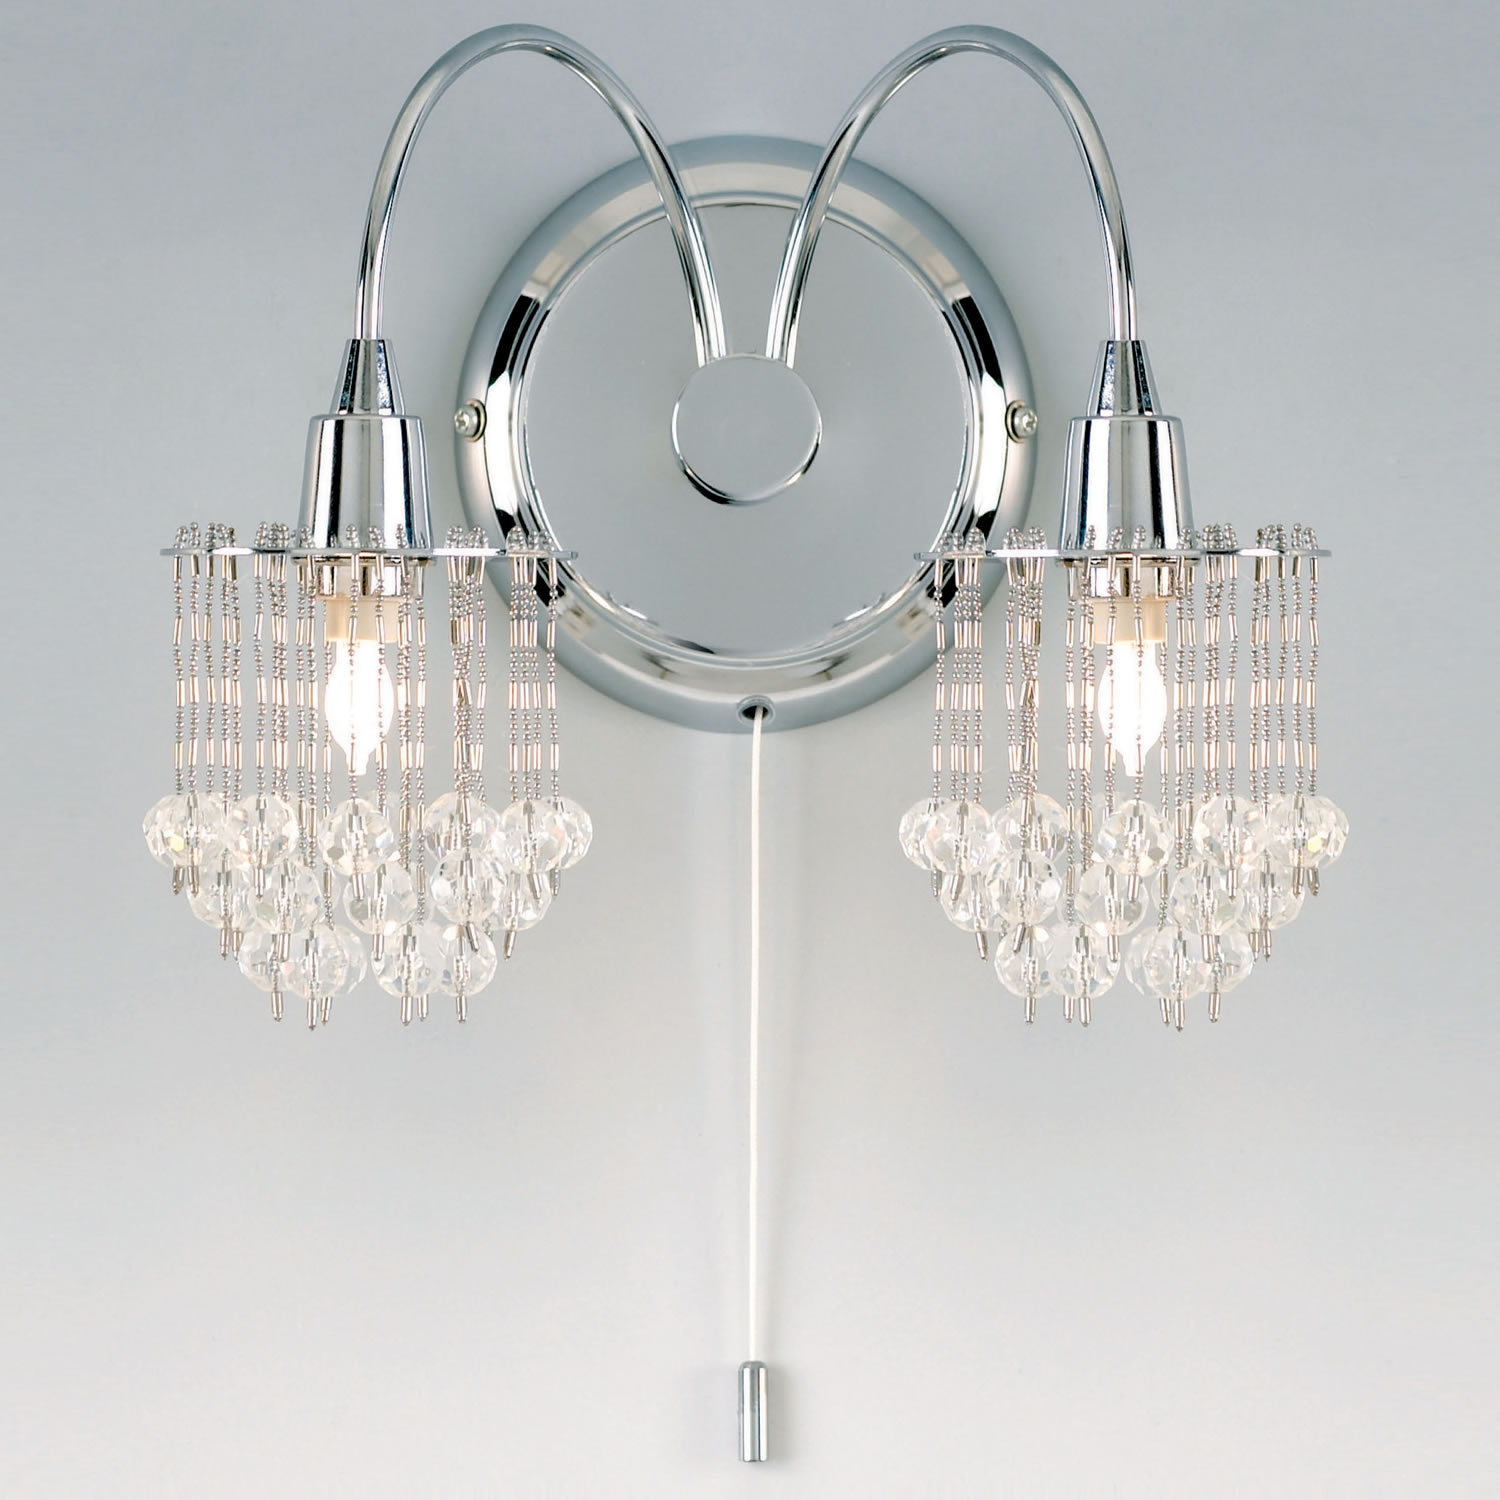 Endon Lighting 2 Light Wall Light In Crystal 850 2 Next Day Next Intended For Chandelier Wall Lights (Image 2 of 15)